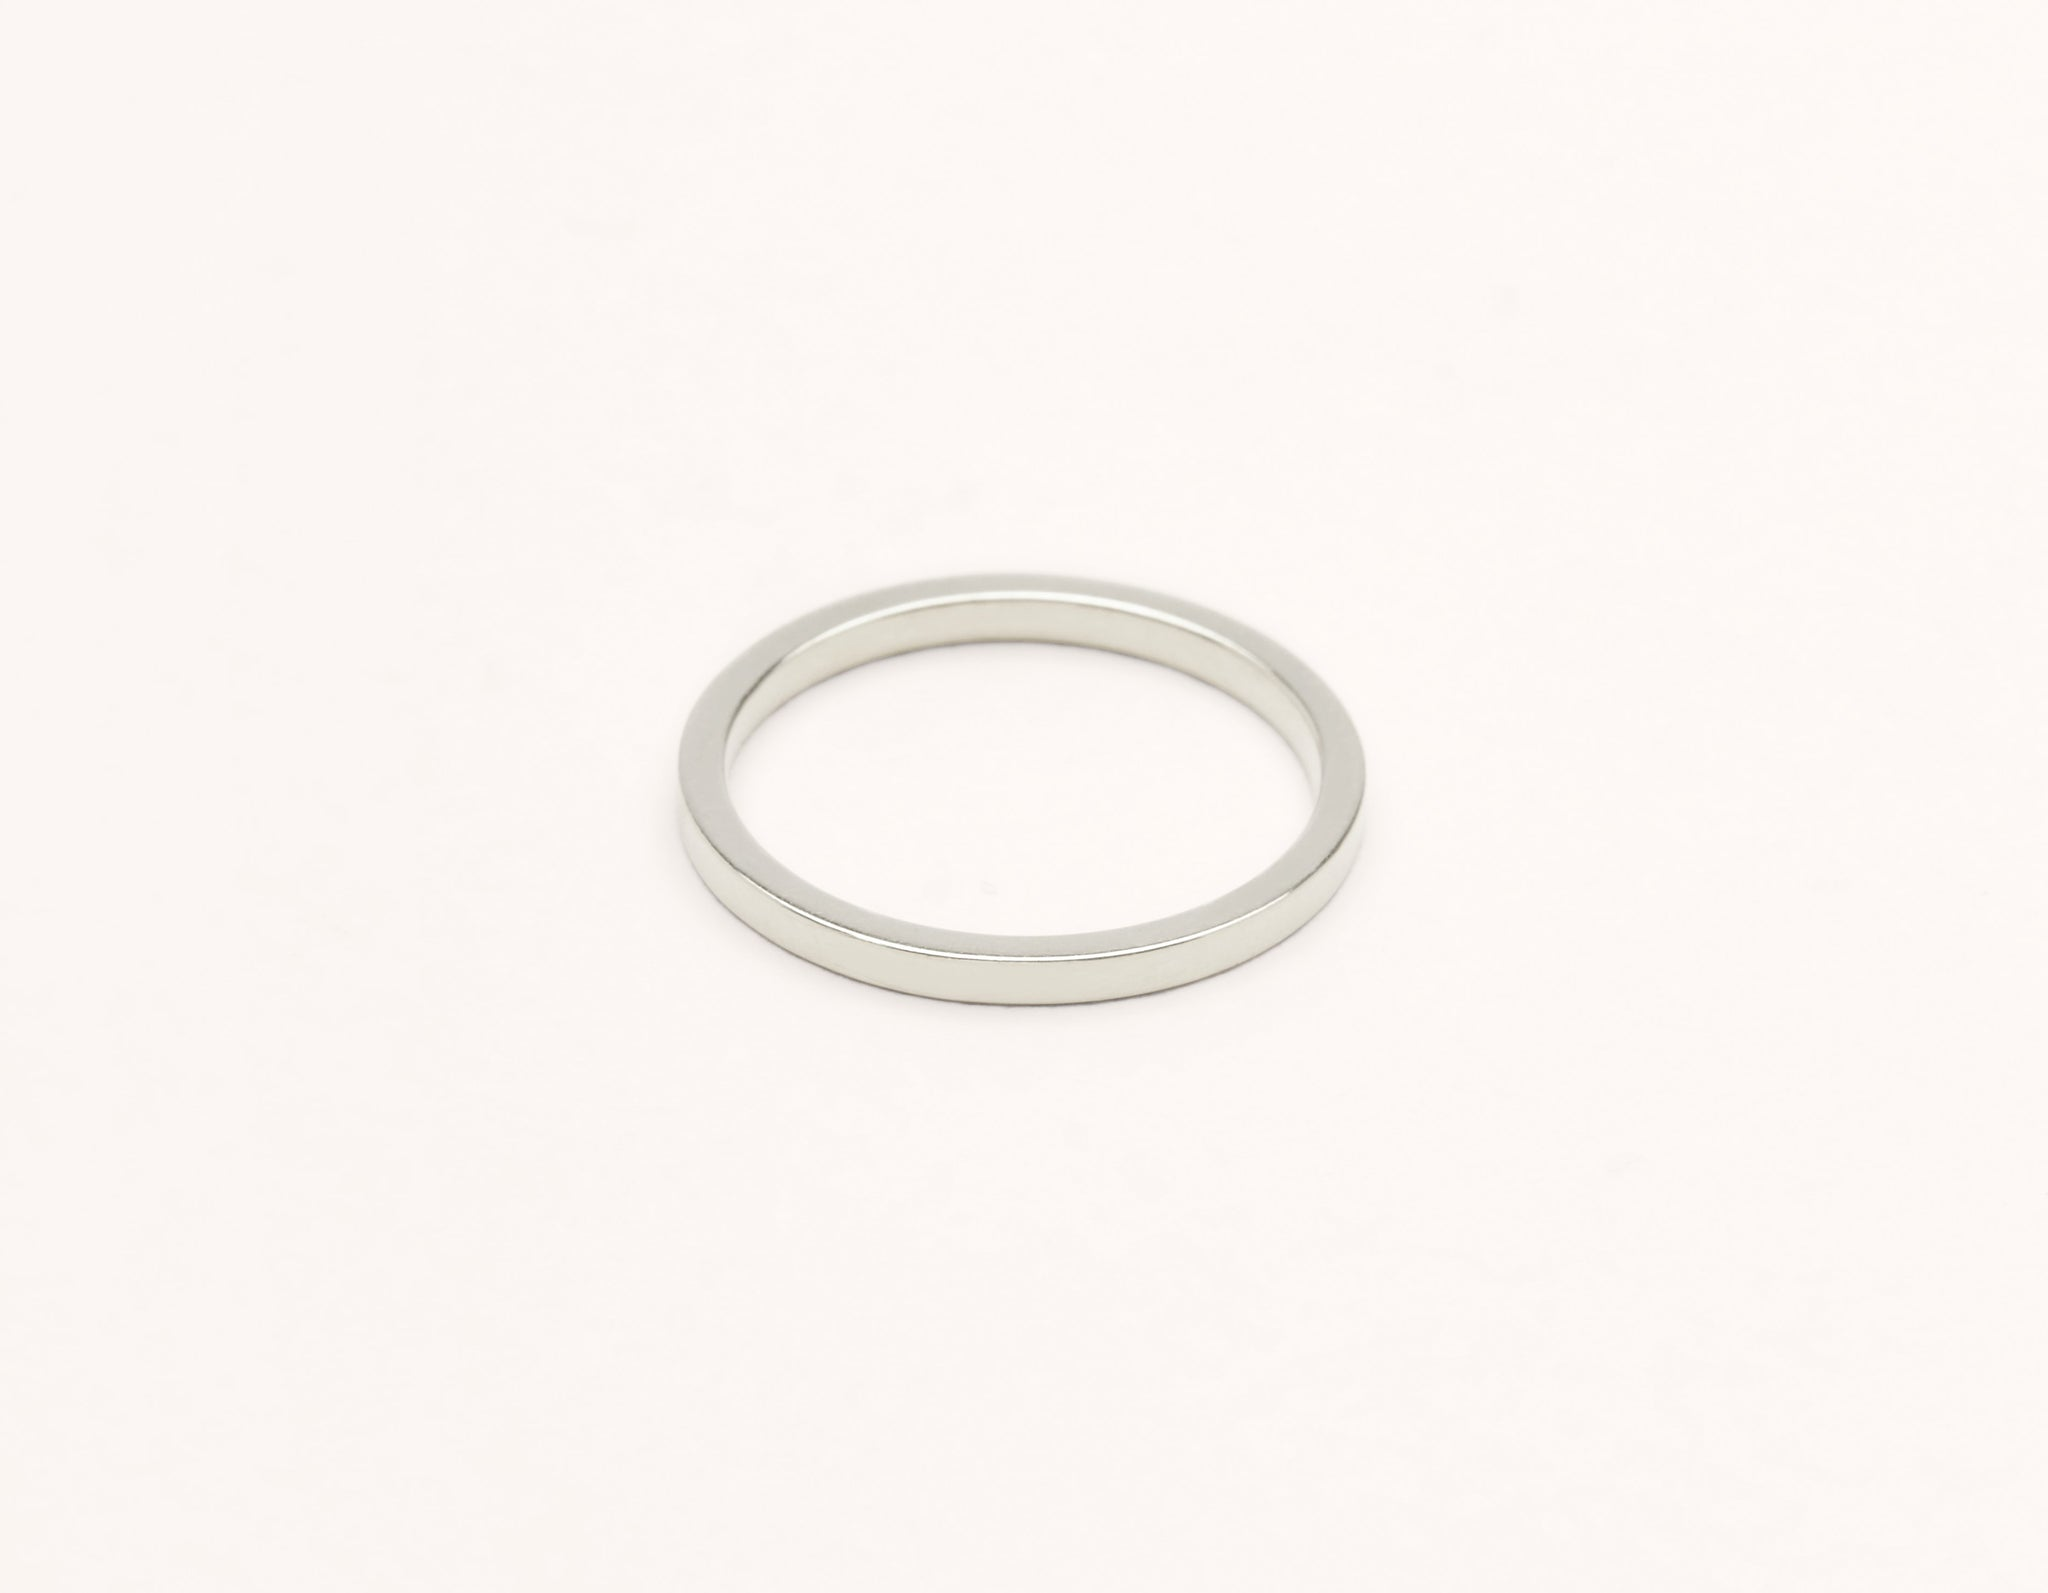 Simple modern 18k solid white gold 1.5 mm Flat men's women's Wedding Band Vrai & Oro